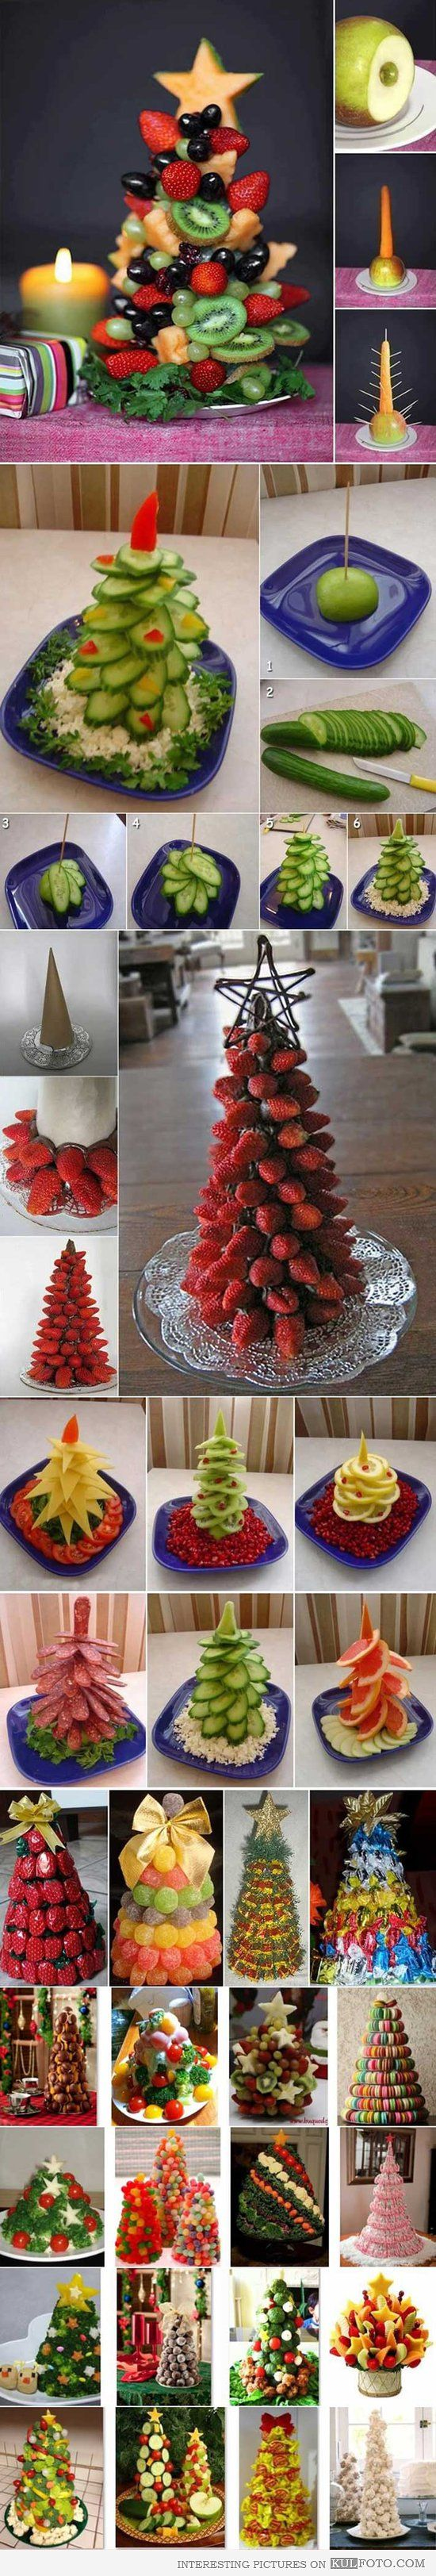 Food Christmas trees.  WOW!